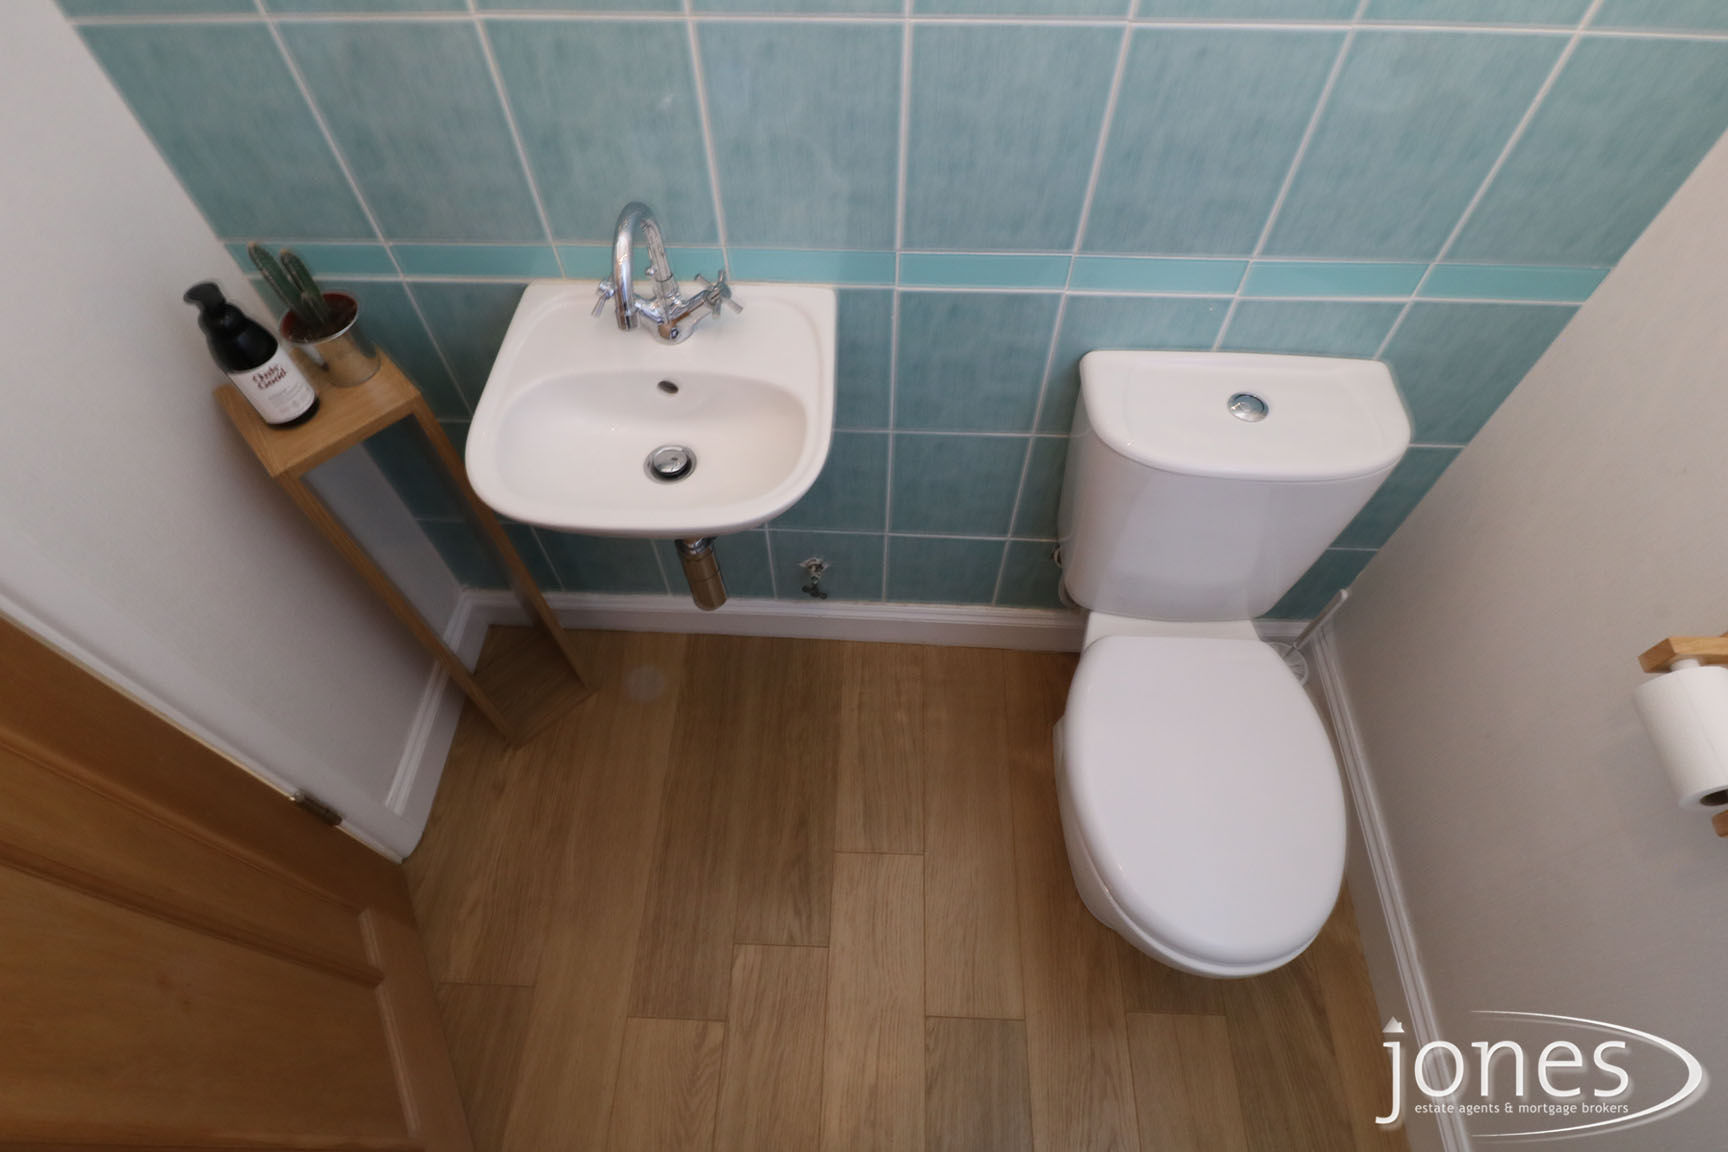 Home for Sale Let - Photo 06 Kielder Drive,Darlington,DL1 2BD